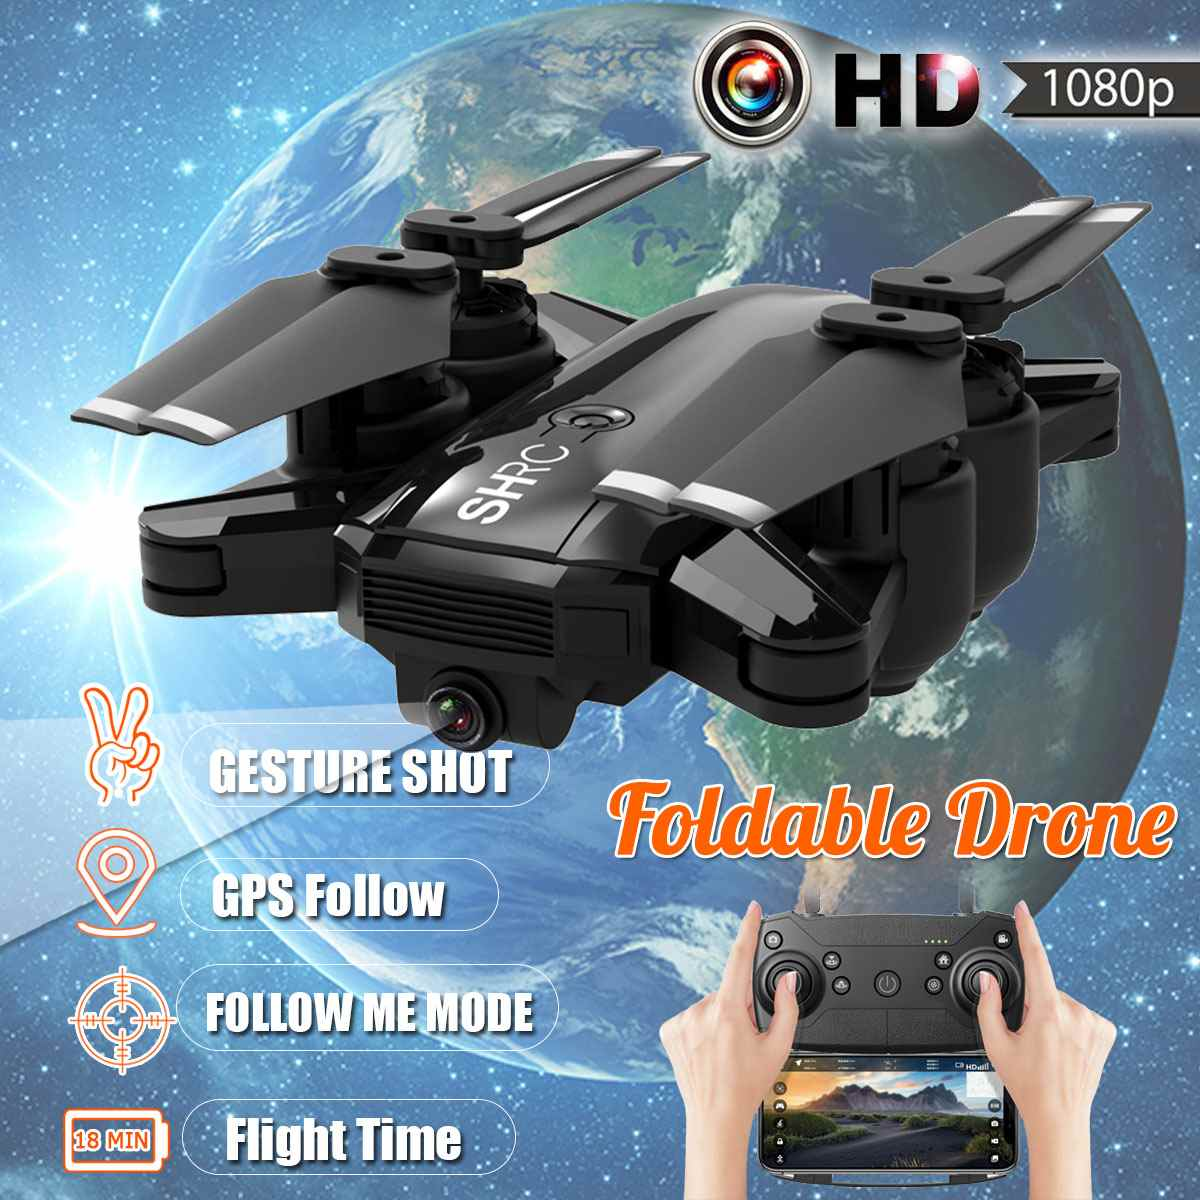 Professional GPS Drone with Camera HD 1080P 5G FPV Wifi RC Drones Foldable Altitude Hold Follow Me Mode RC Quadcopter HelicopterProfessional GPS Drone with Camera HD 1080P 5G FPV Wifi RC Drones Foldable Altitude Hold Follow Me Mode RC Quadcopter Helicopter